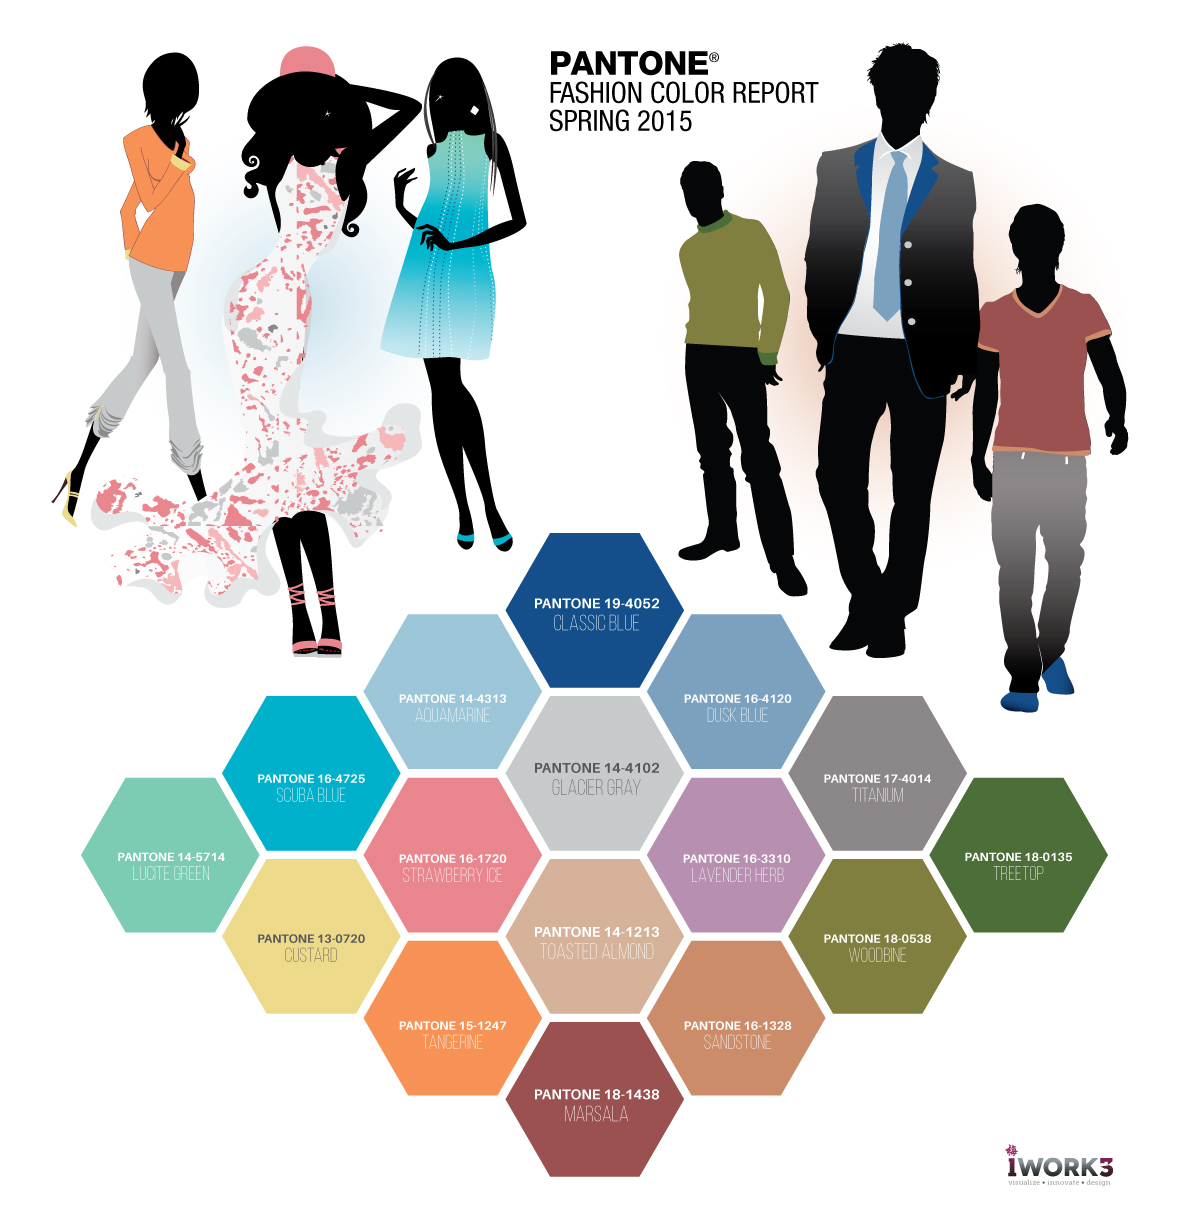 Pantone 2016: Pantone 2015 Spring Fashion Report